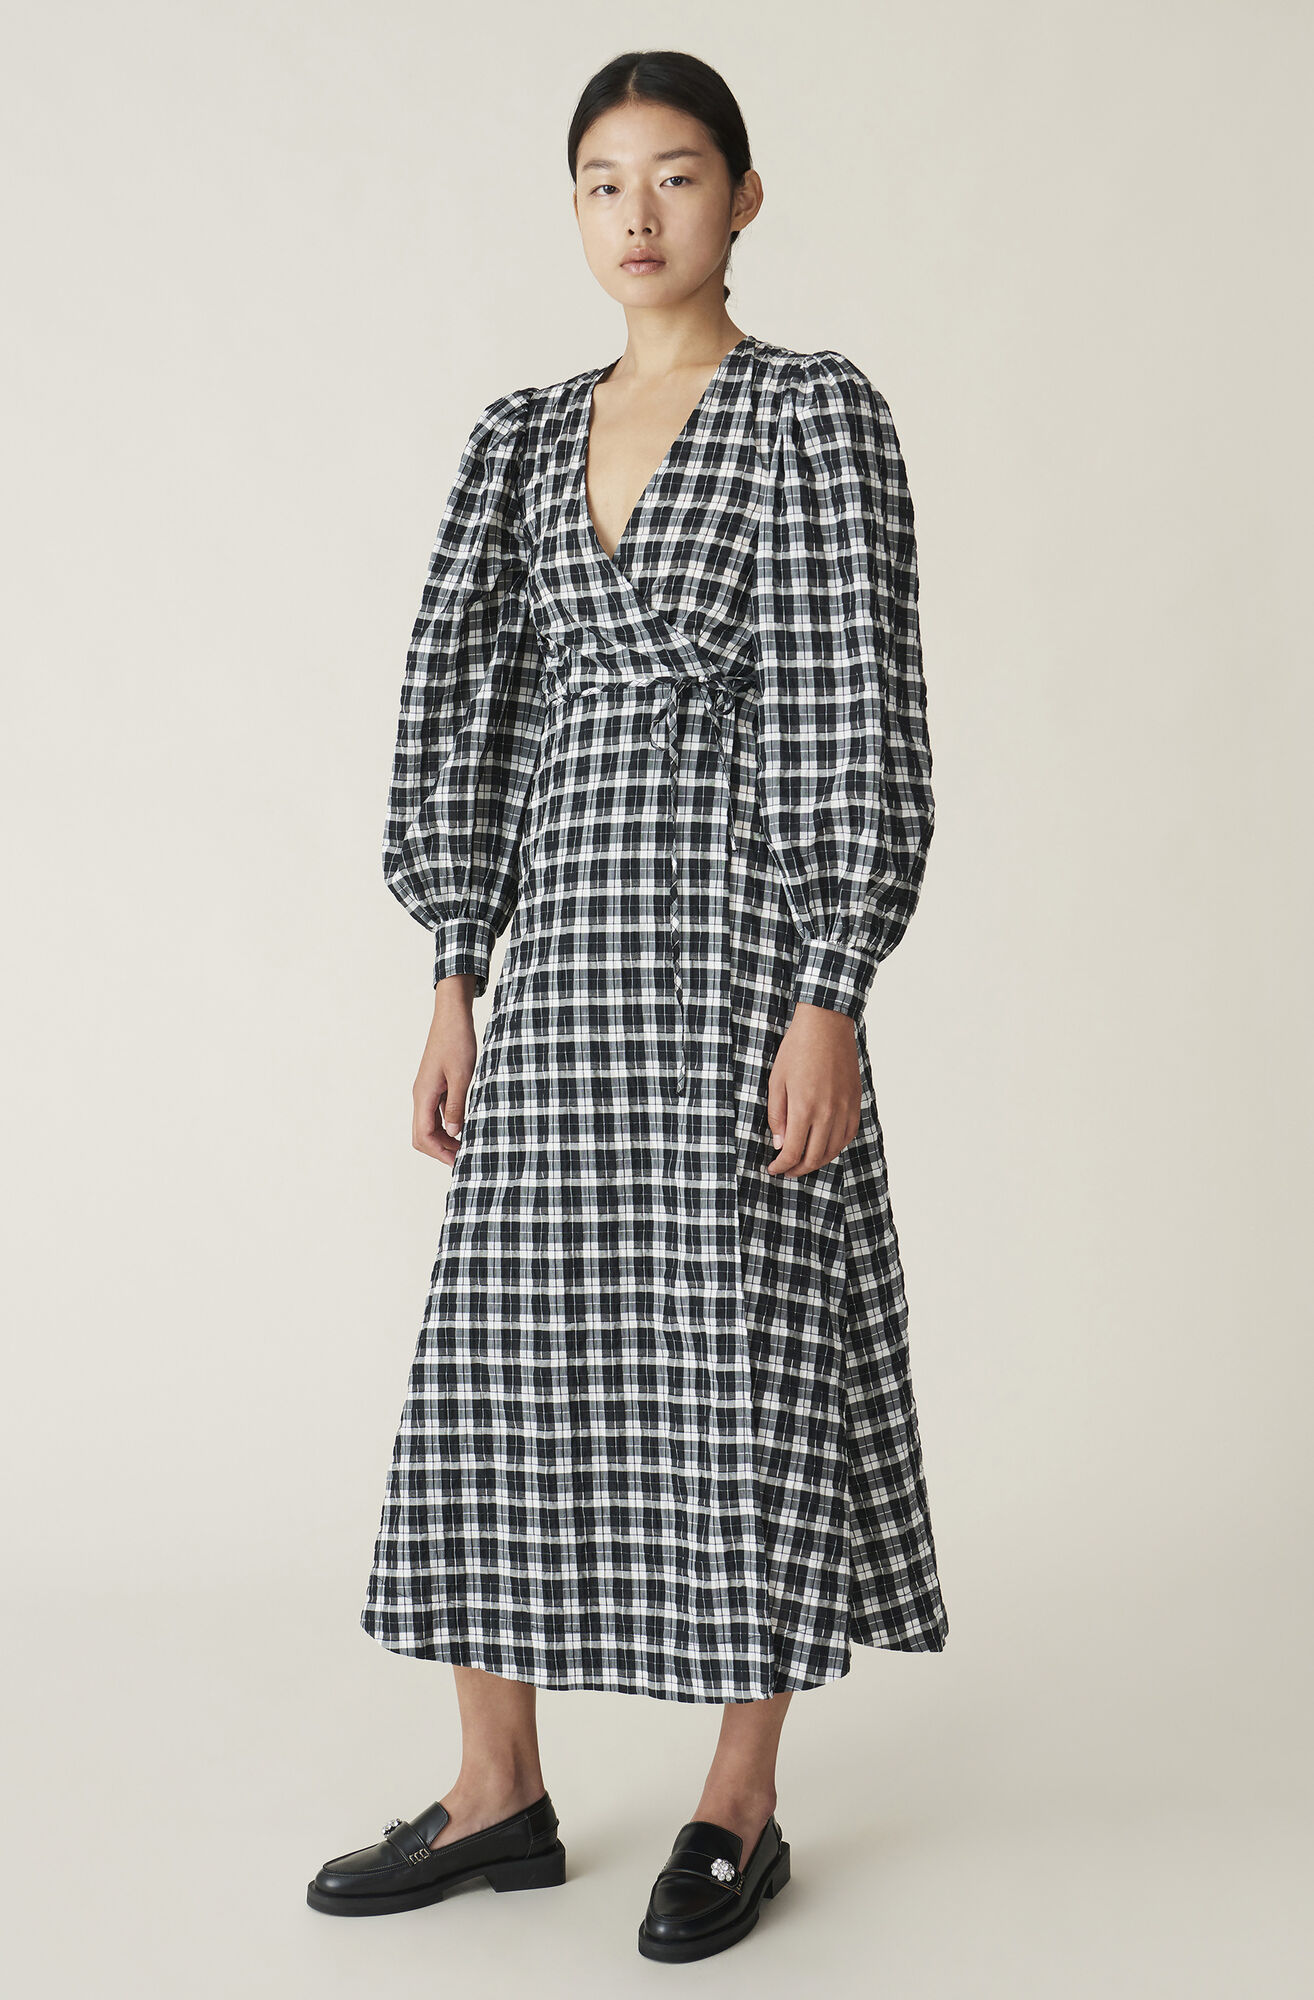 Ganni Us Seersucker Check Wrap Dress 118 00 Usd Shop Your New Seersucker Check Wrap Dress At Ganni Com